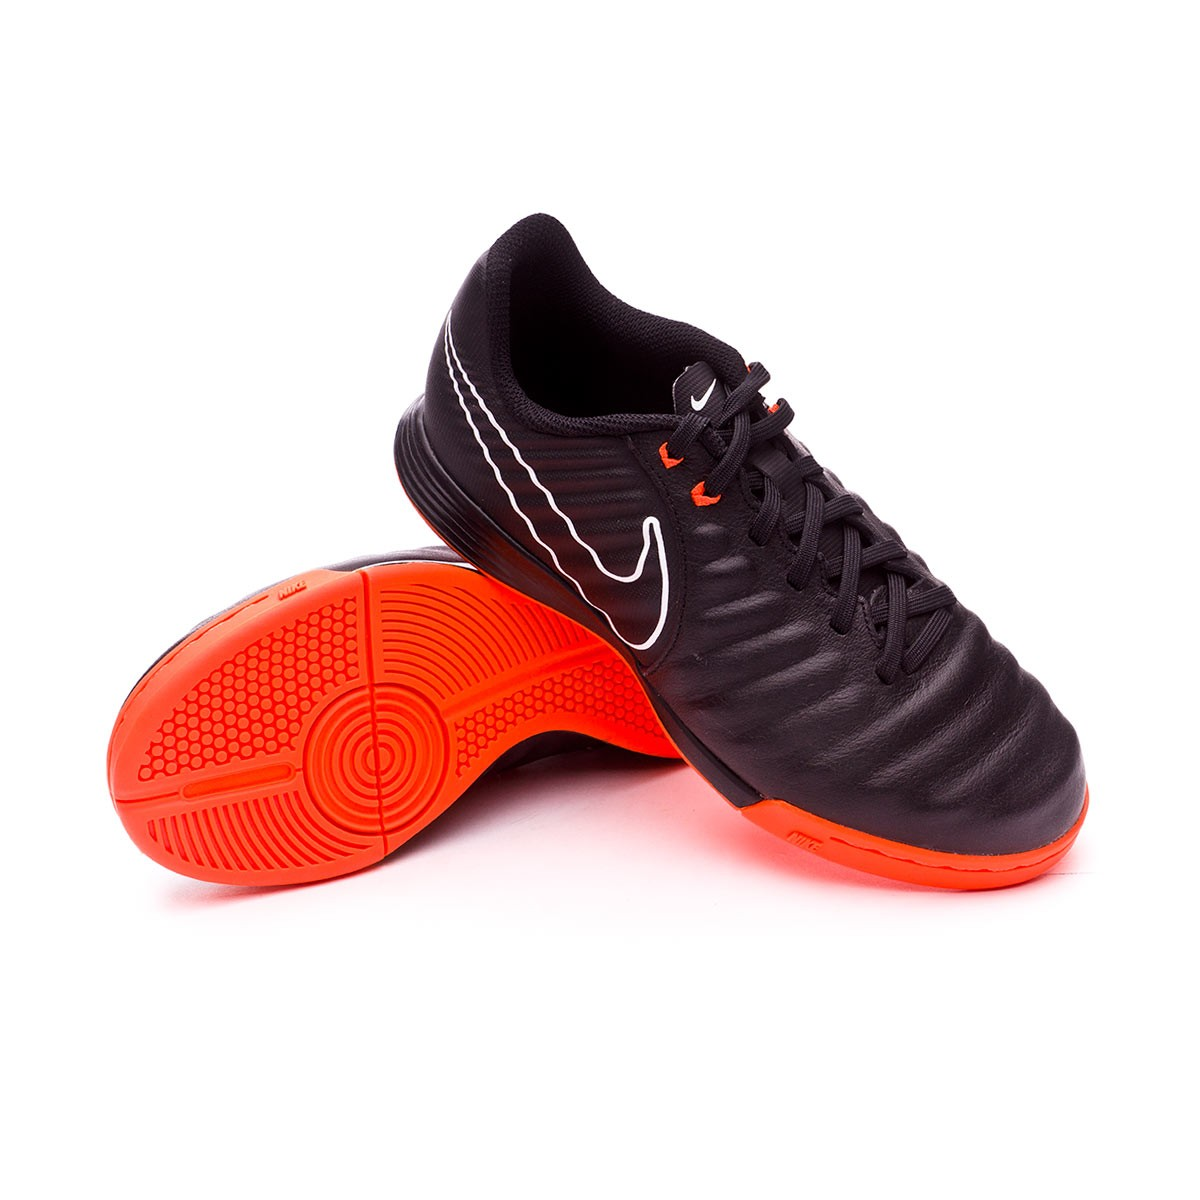 Nike futsal shoes Football store Fútbol Emotion